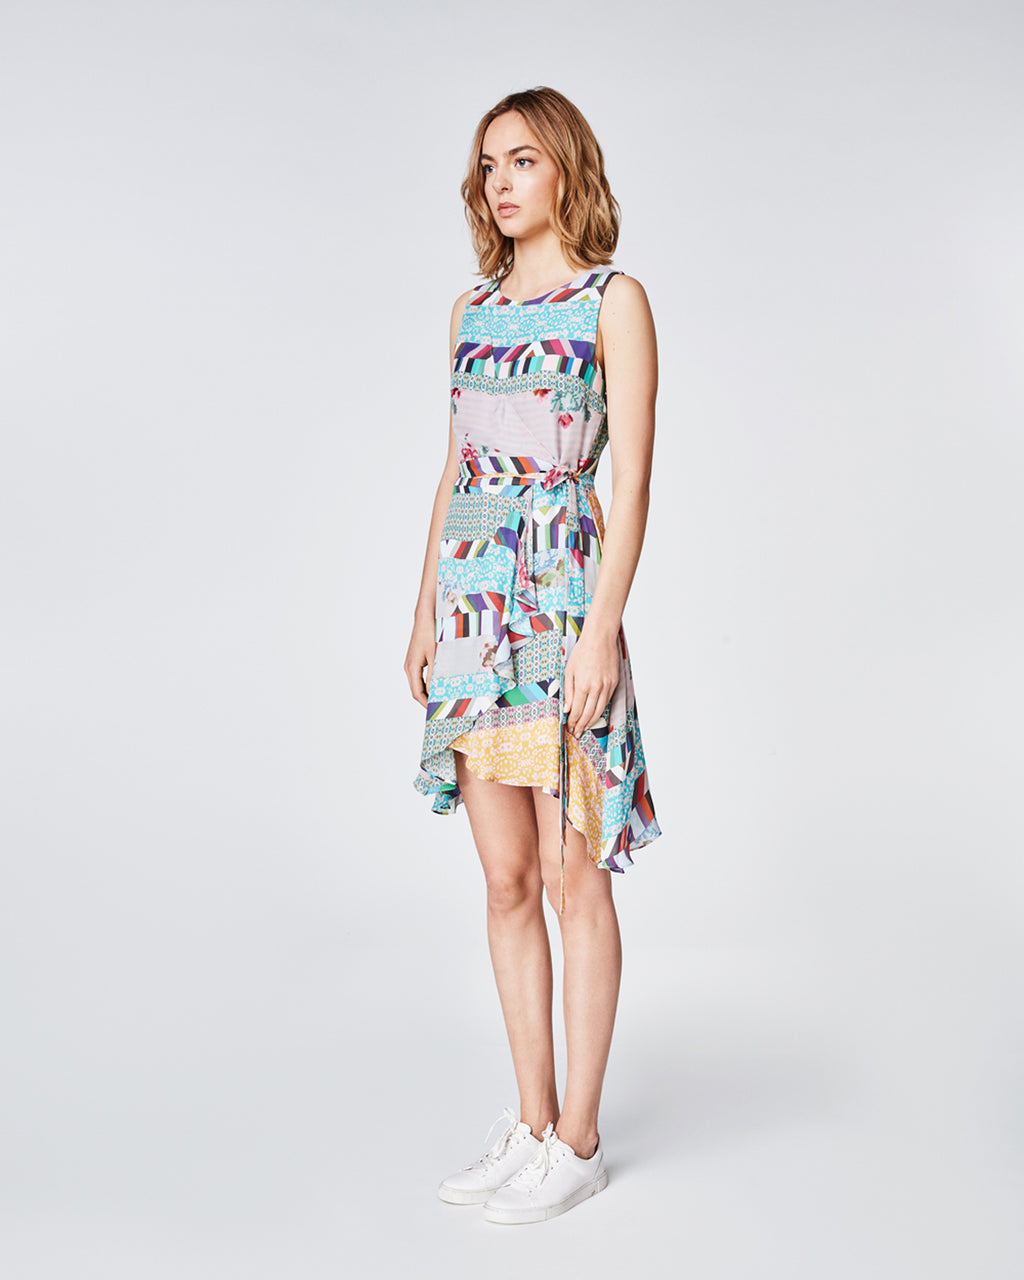 BQ10293 - BOUQUET STRIPE FAUX WRAP DRESS - dresses - short - In a faux wrap silhouette, this silk dress features a contrasting hibiscus print. The delicate ruffles fall to a midi length. Pair with strappy sandals for a completed look. Finished with a concealed zipper, this dress is fully lined. final sale